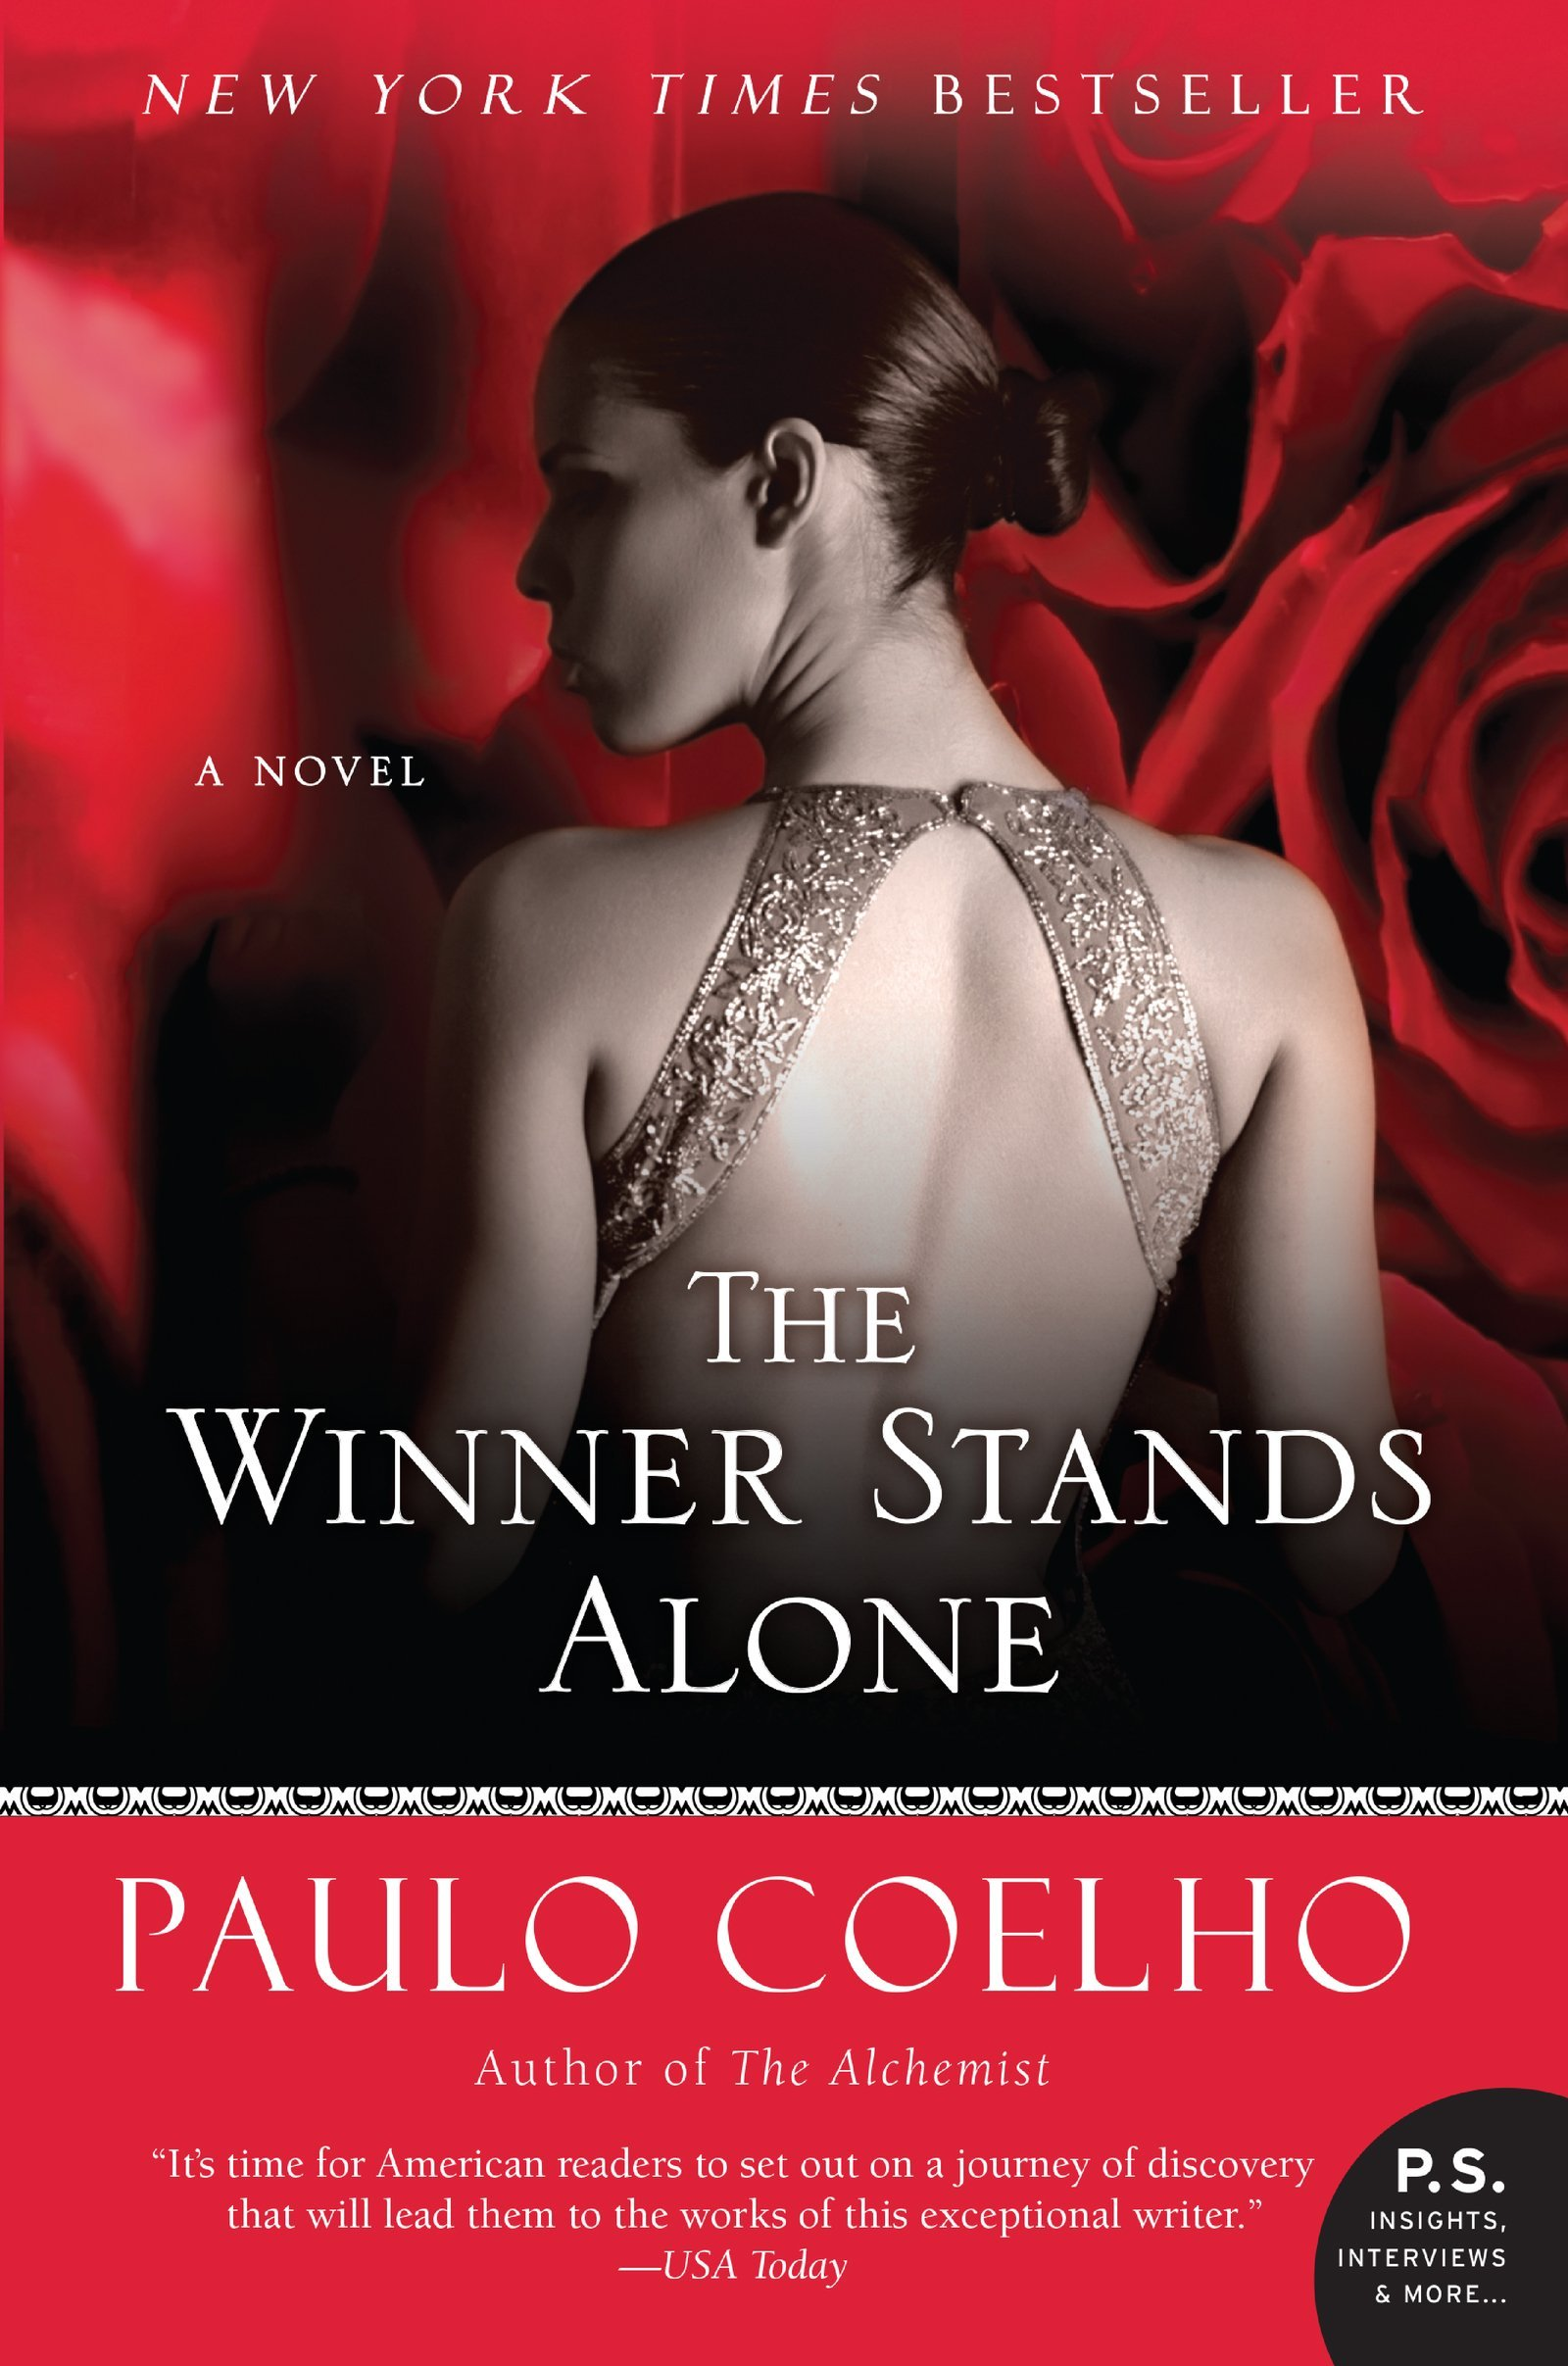 com the winner stands alone a novel p s 9780061750526  com the winner stands alone a novel p s 9780061750526 paulo coelho books